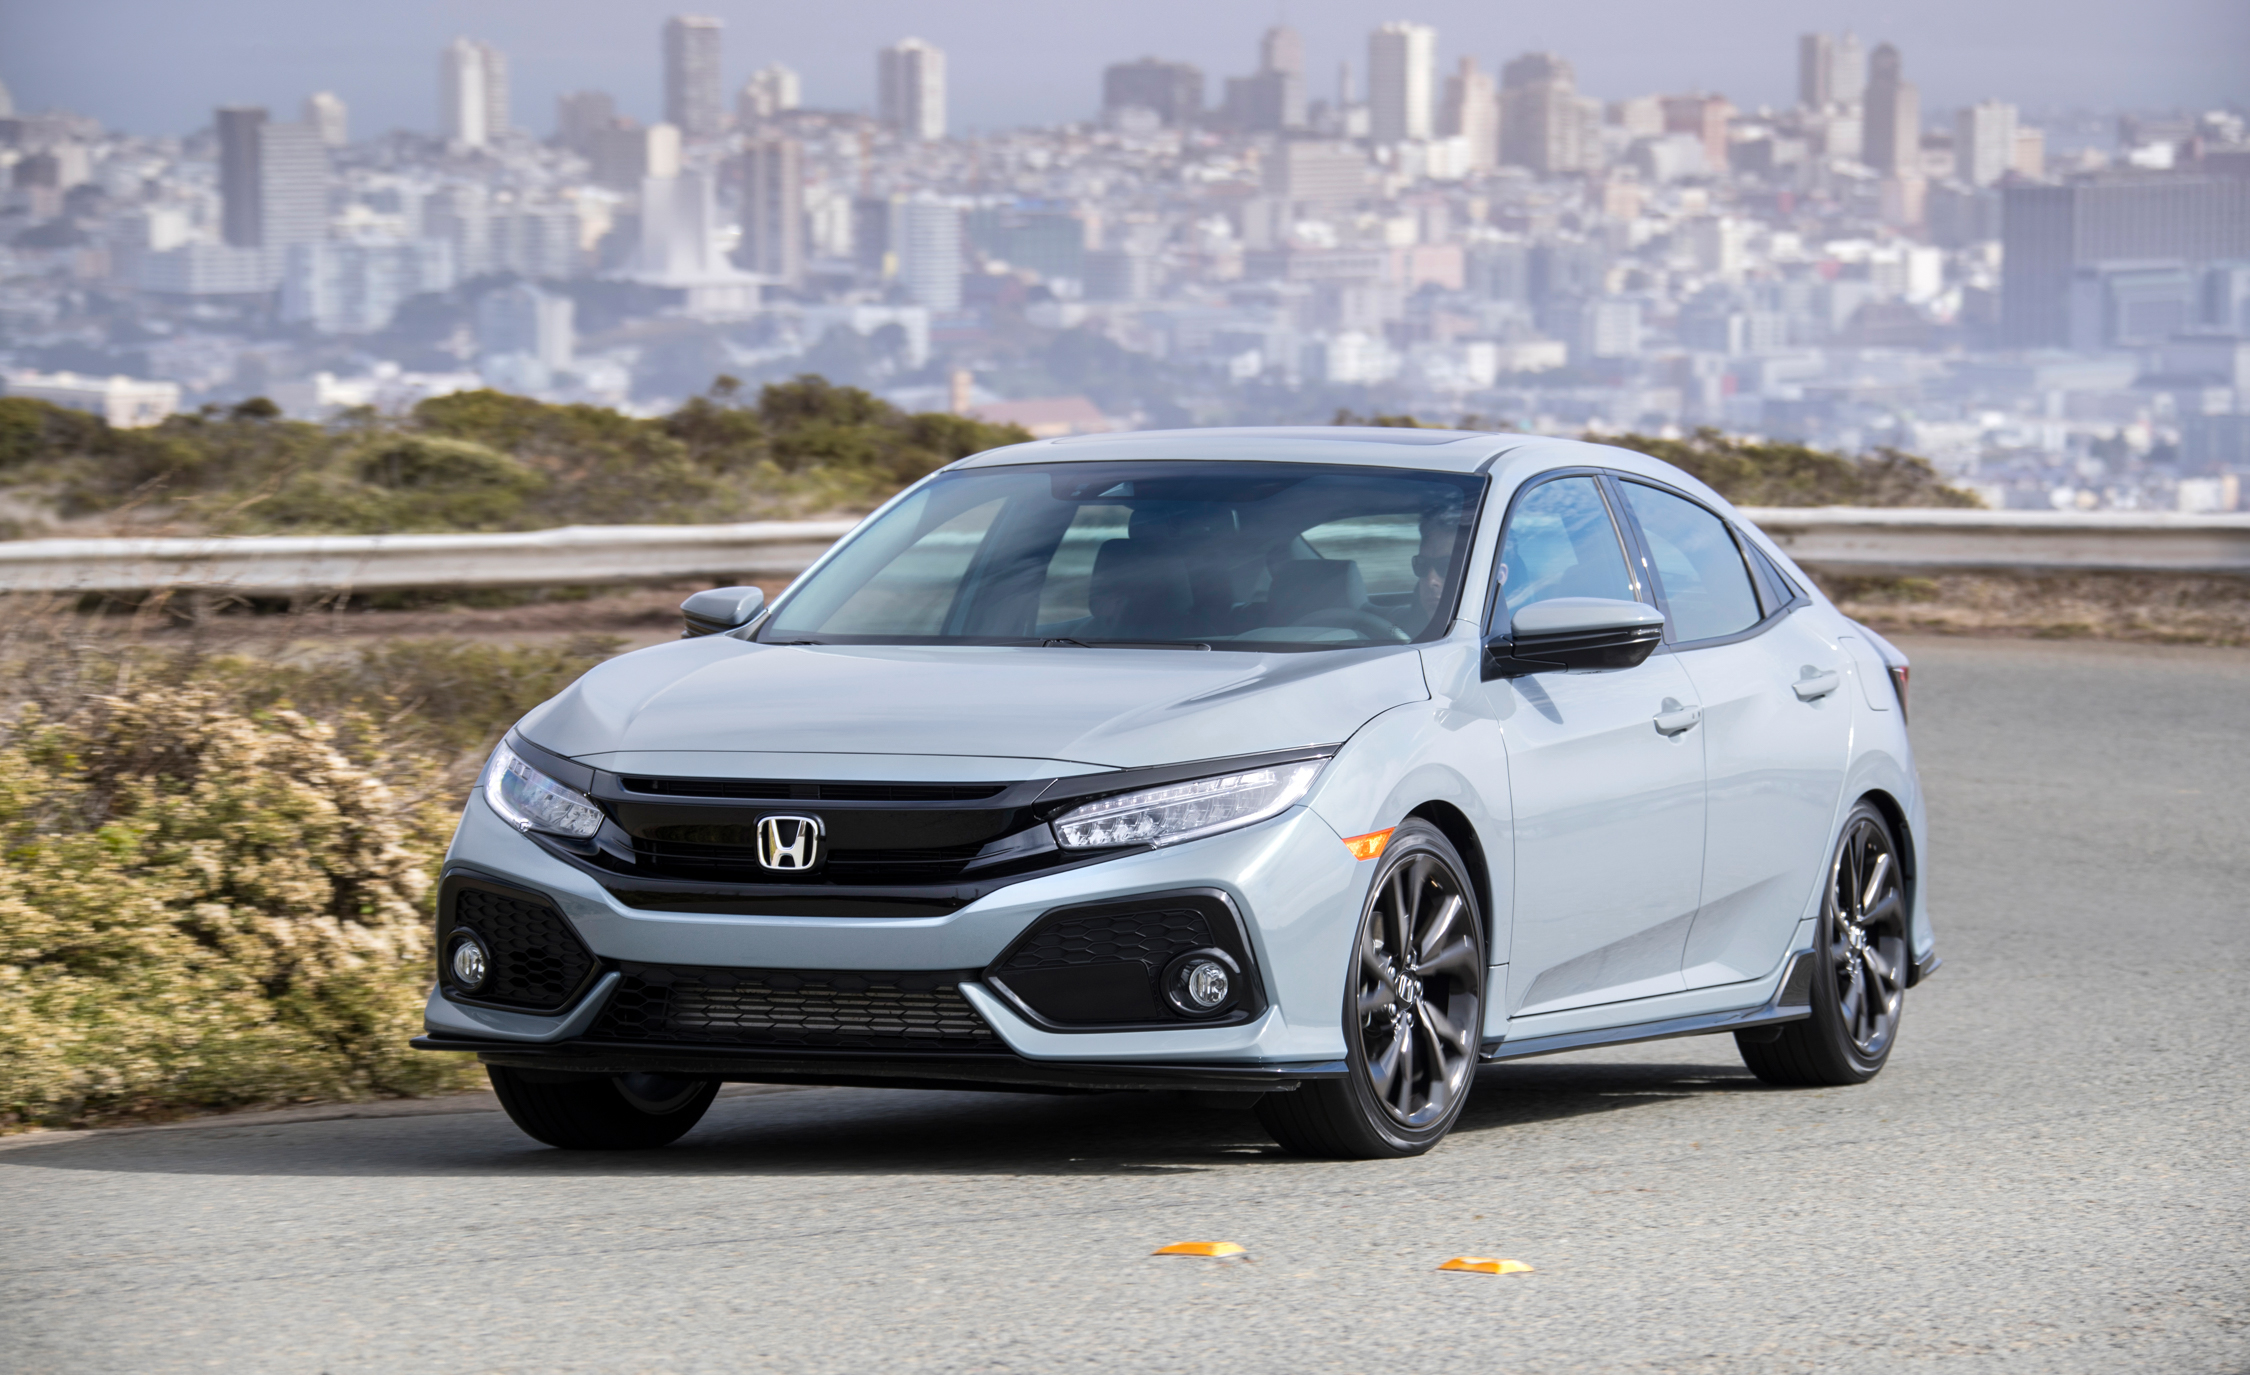 2017 Honda Civic Hatchback (Photo 4 of 34)